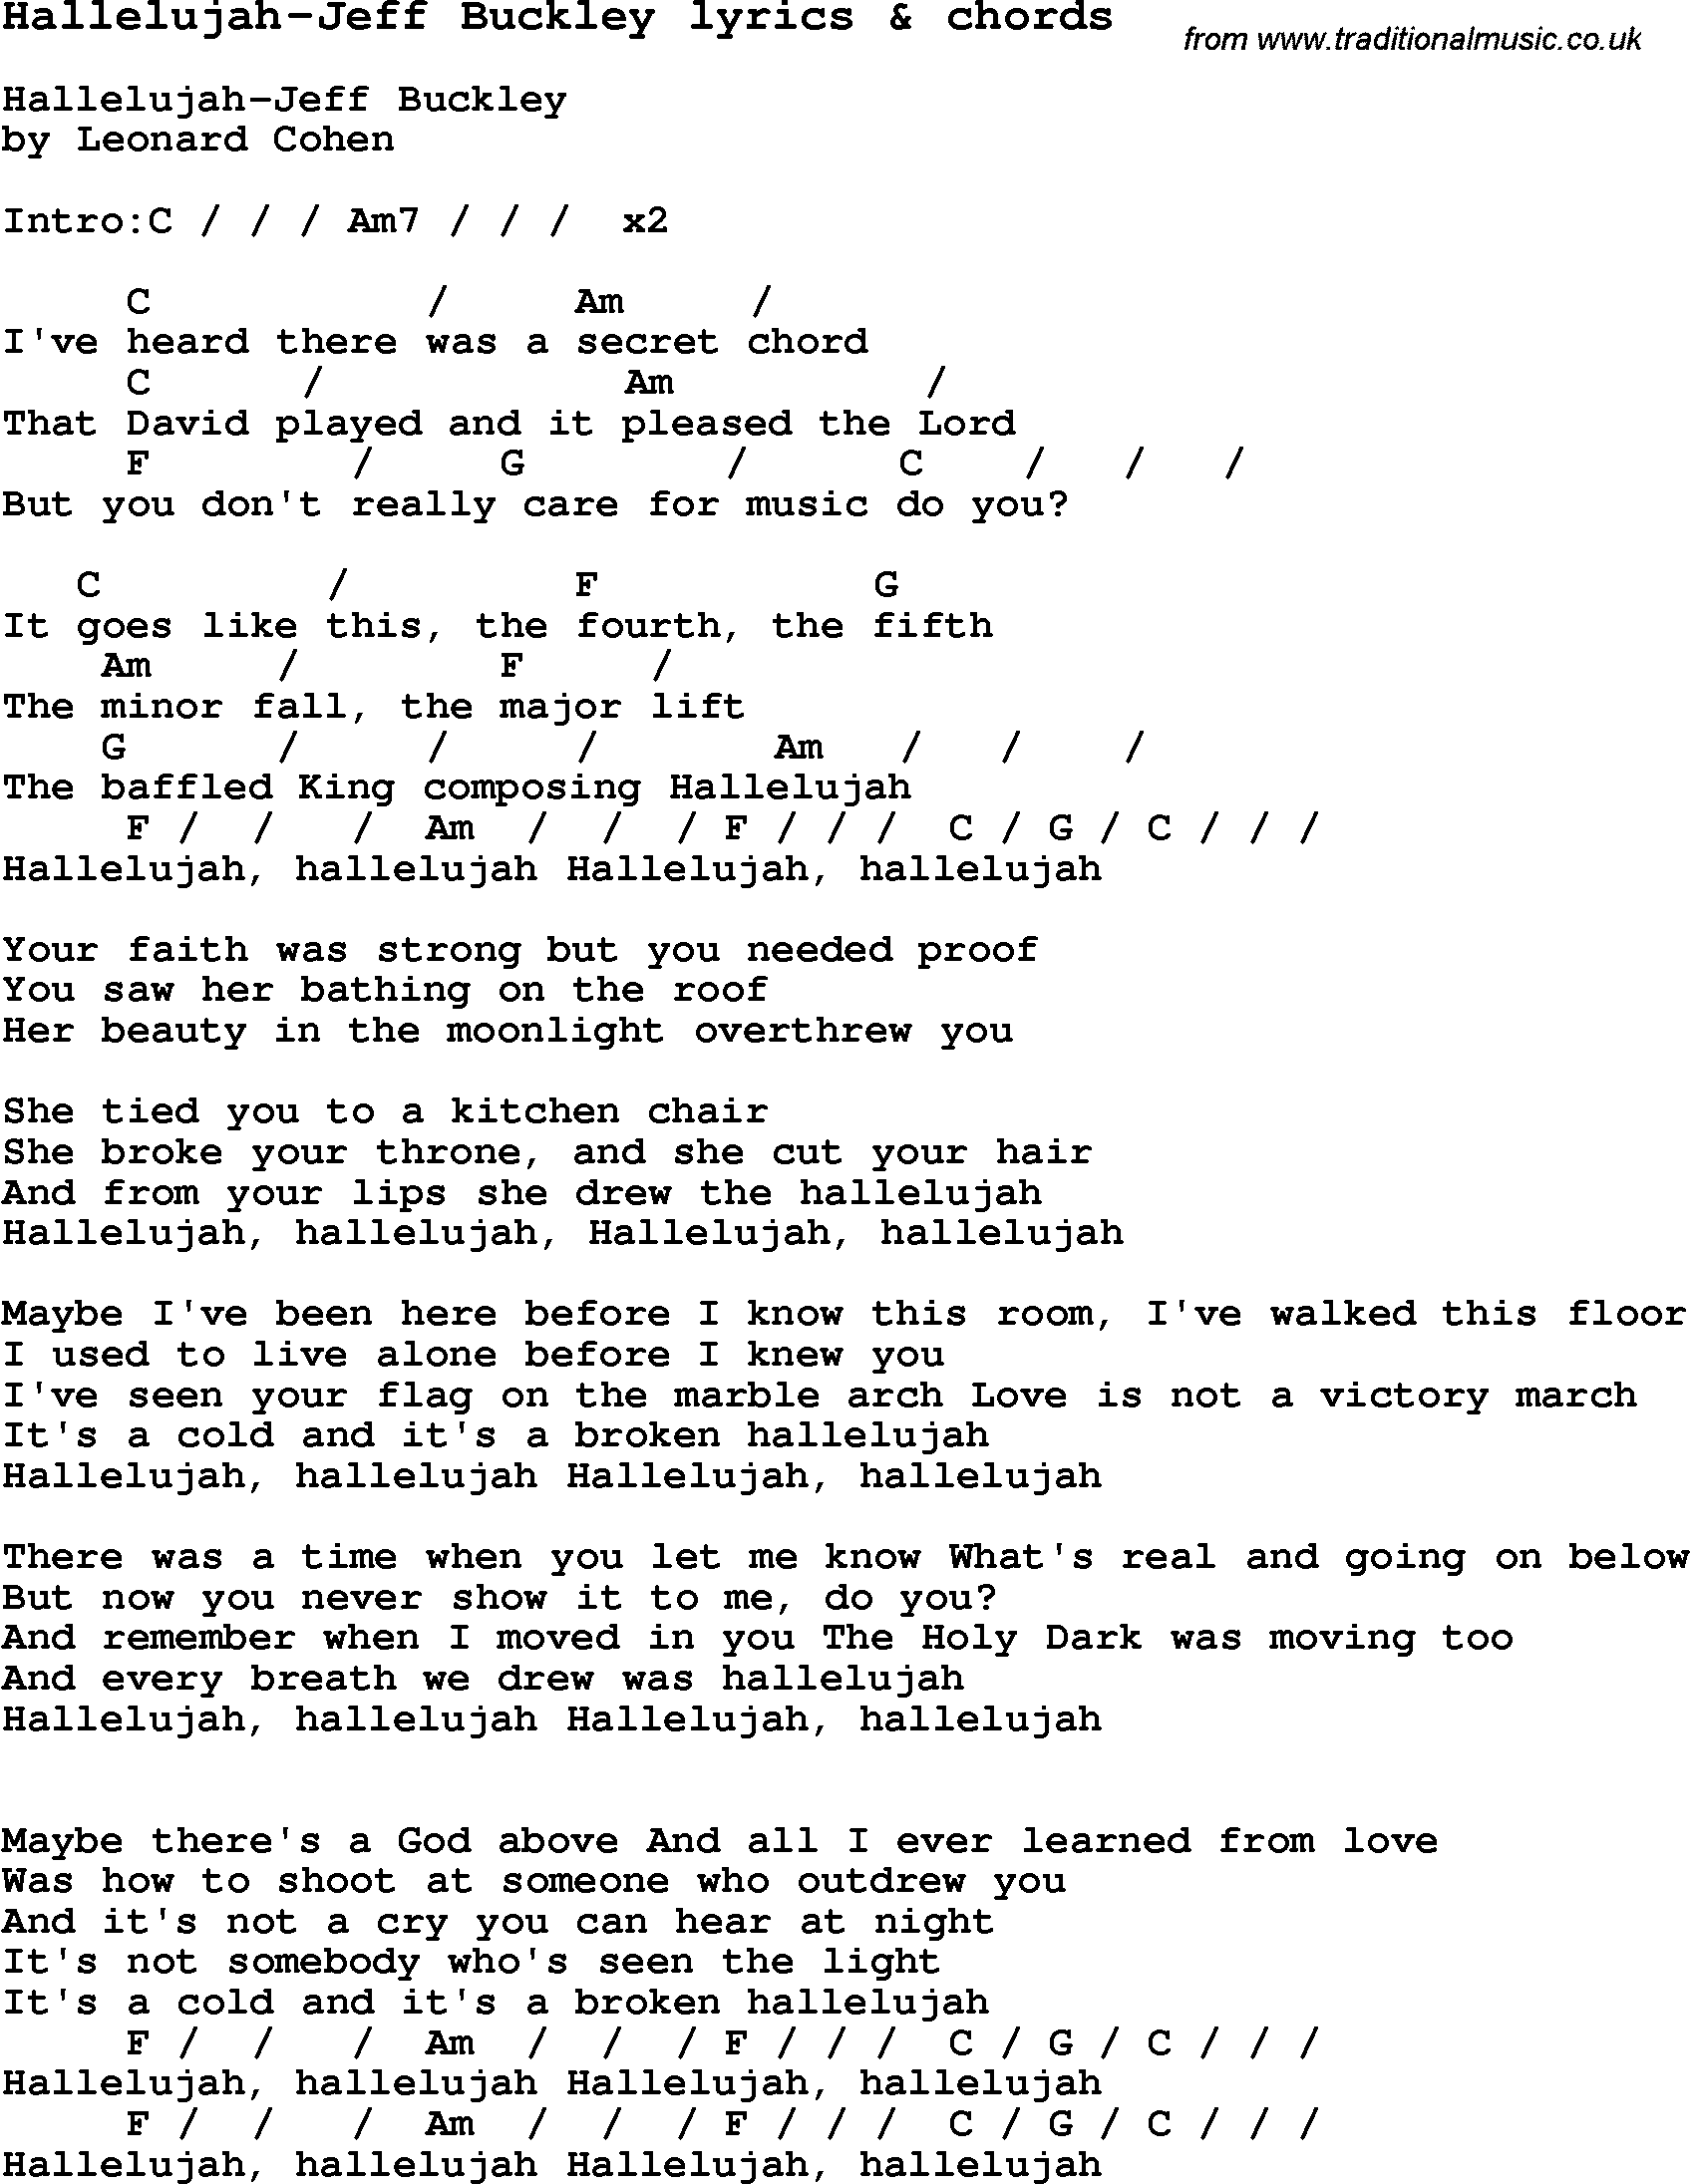 Love song lyrics forhallelujah jeff buckley with chords music love song hallelujah jeff buckley with chords and lyrics for ukulele guitar banjo and other instruments hexwebz Images